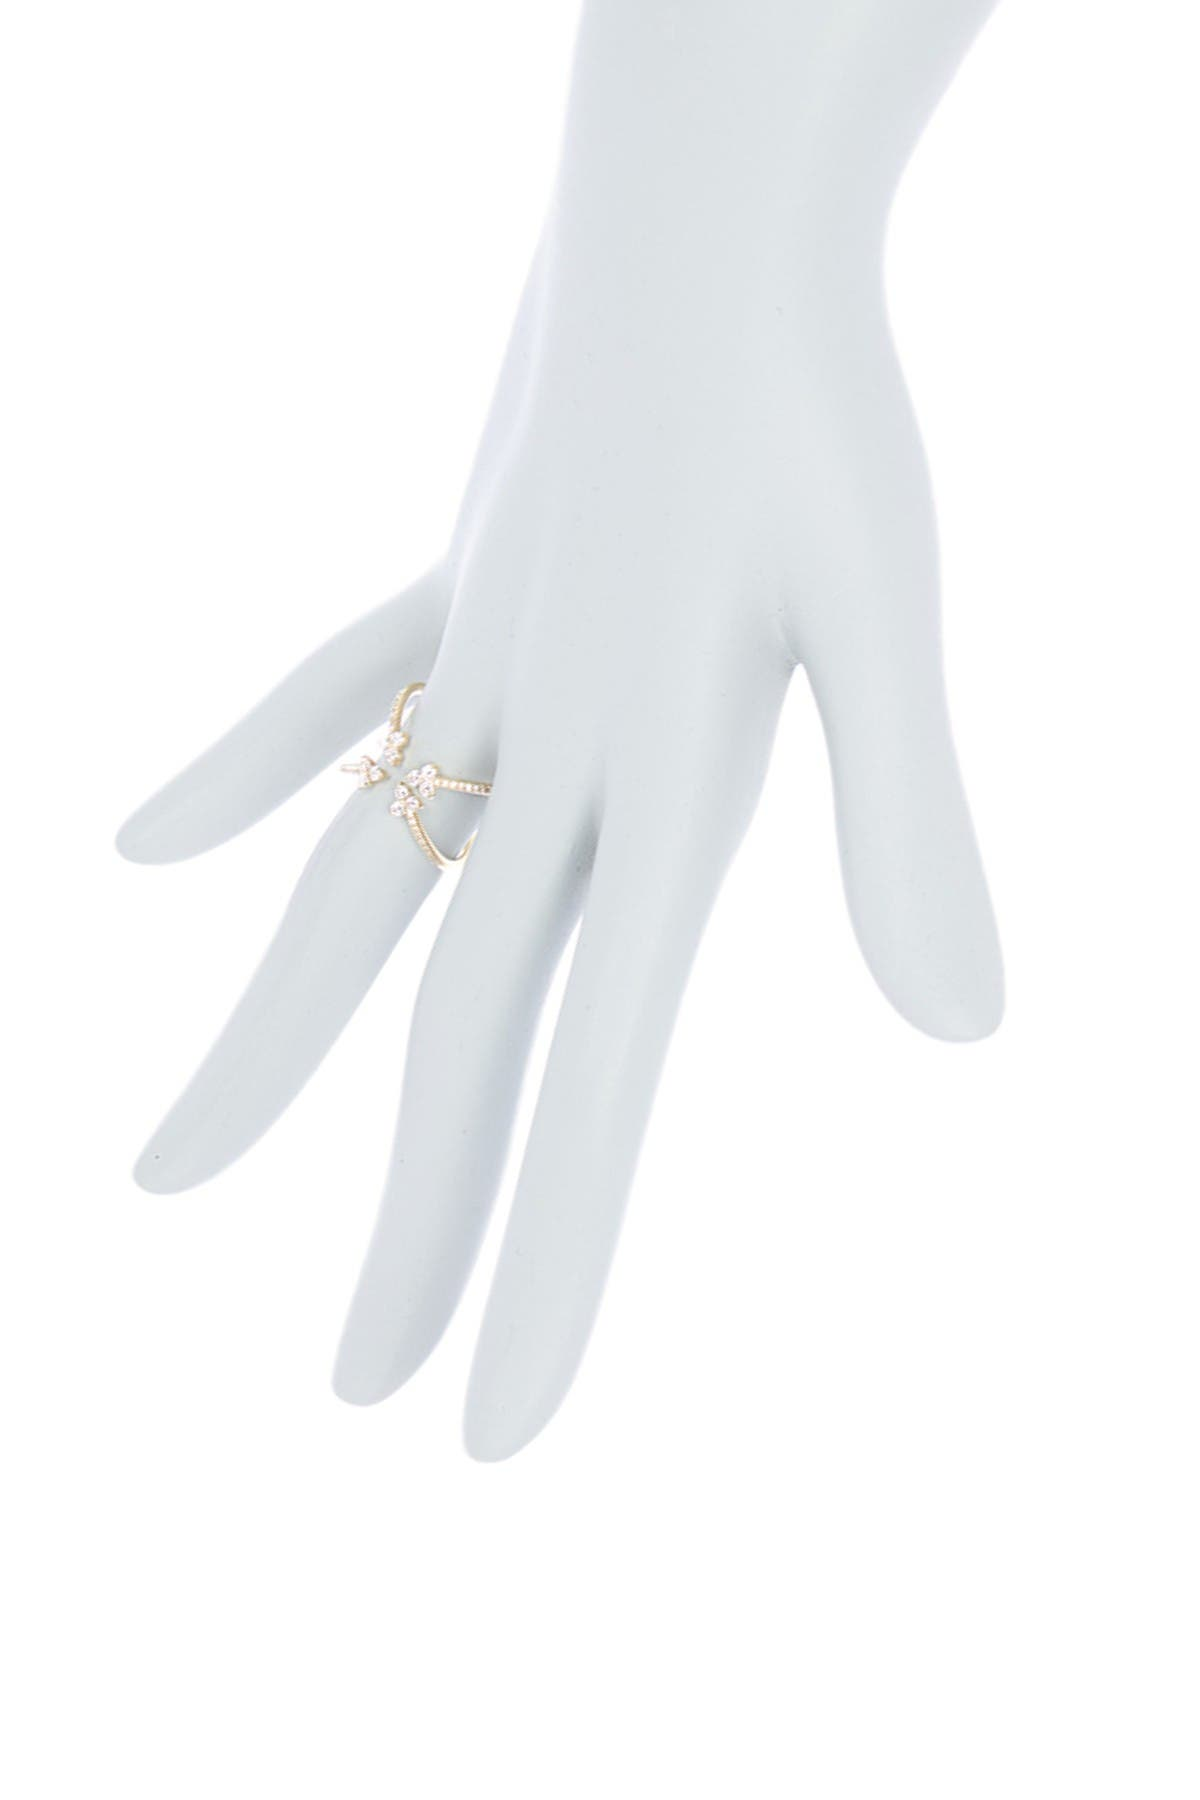 Image of EF Collection 14K Yellow Gold 4-Way Open Arrow Diamond Ring - Size 7